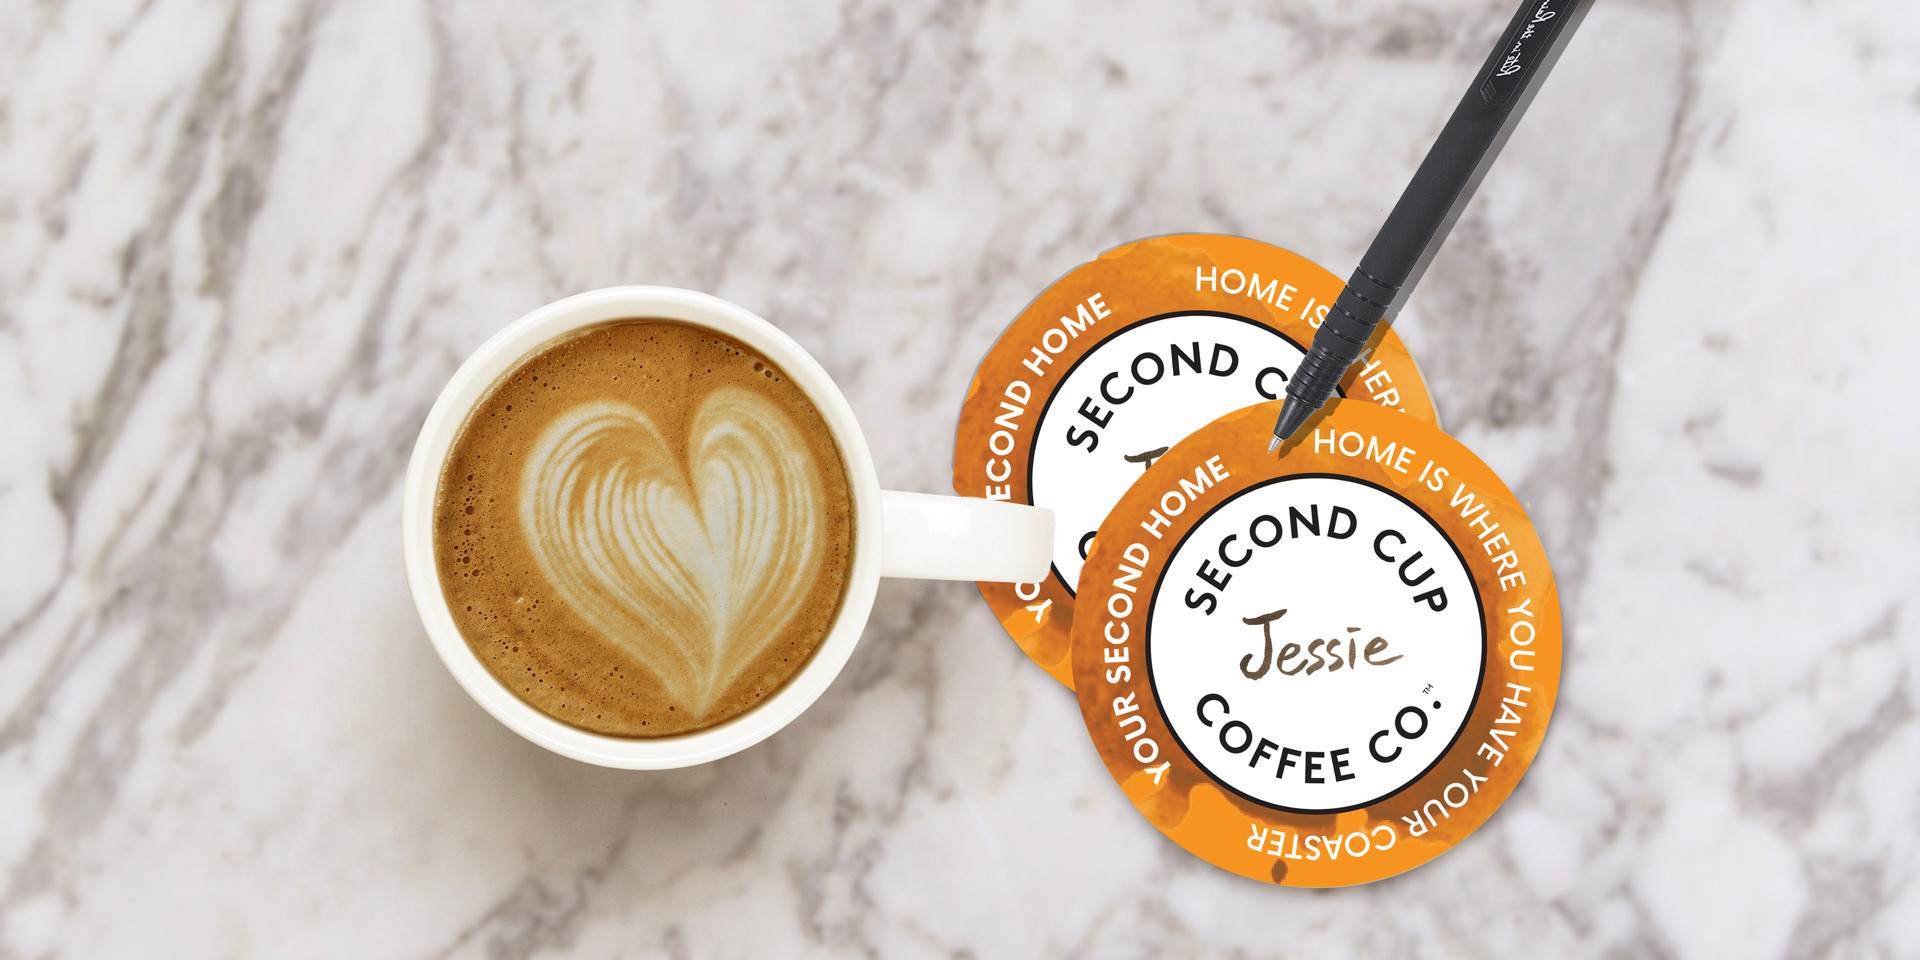 Jessie Lee-Secondcup-the final2020-reduc